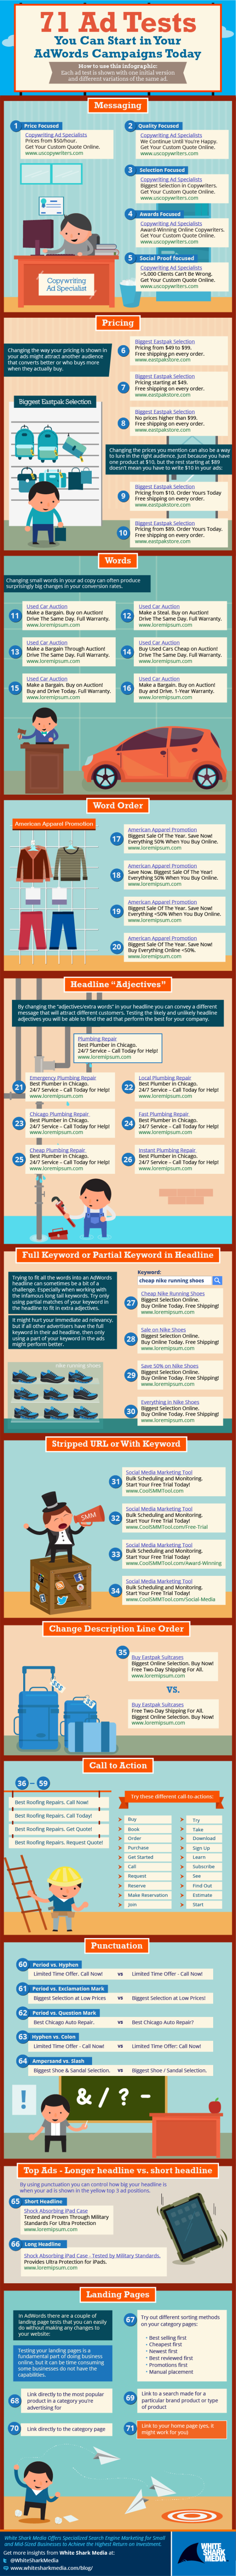 71 Ad Tests You Can Start In Your AdWords Campaigns Today [INFOGRAPHIC] #adwords #campaigns